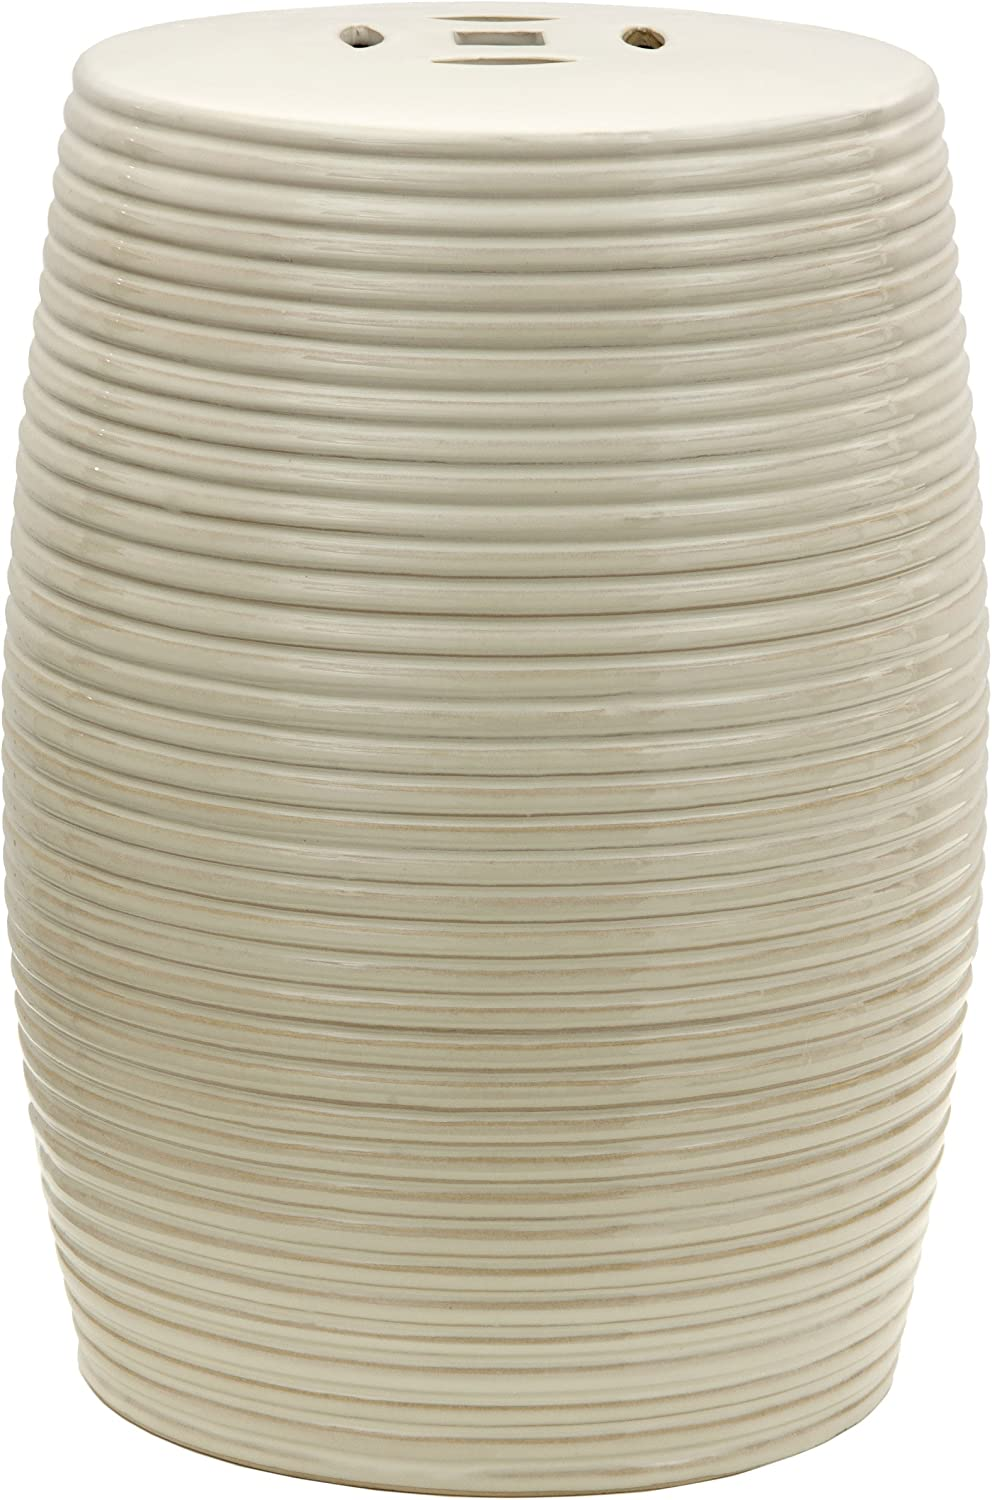 "Oriental Furniture 18"" Beige Ribbed Porcelain Garden Stool"